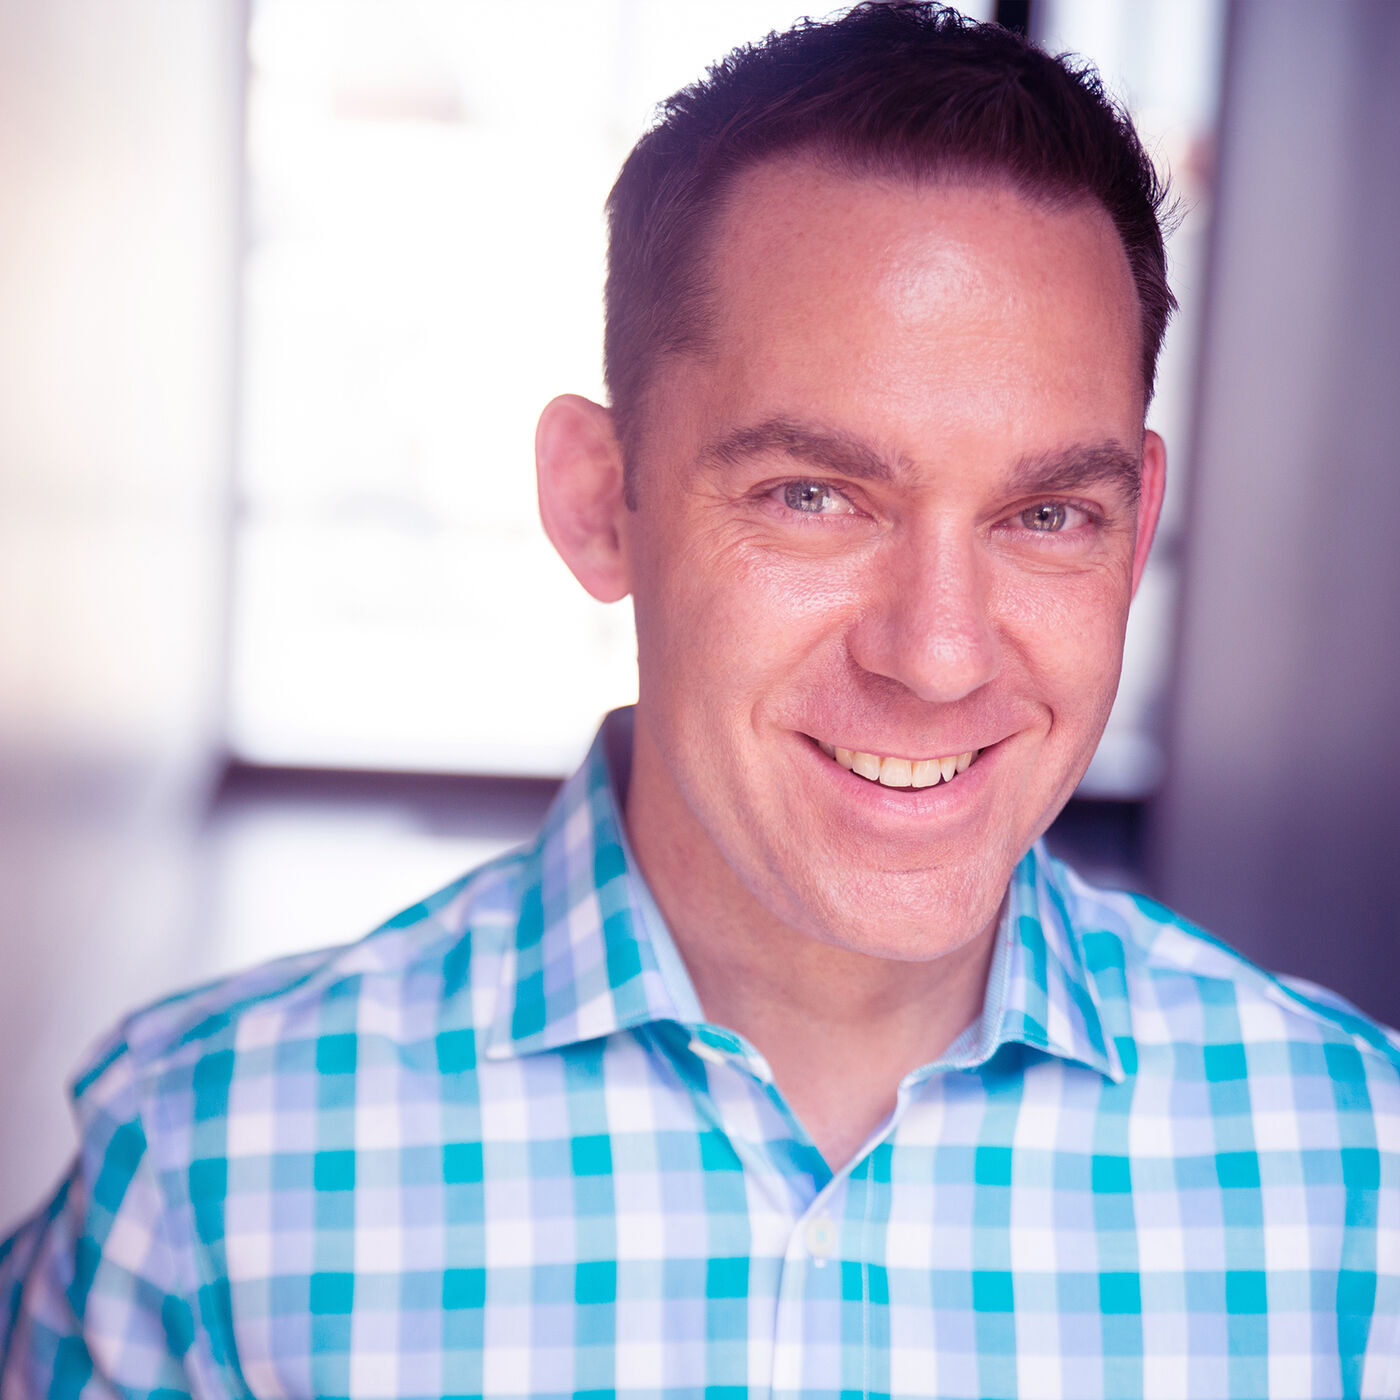 Interview with Chip Klose, restaurant consultant, marketing strategist & Restaurant Strategy podcast host (ENGLISH)